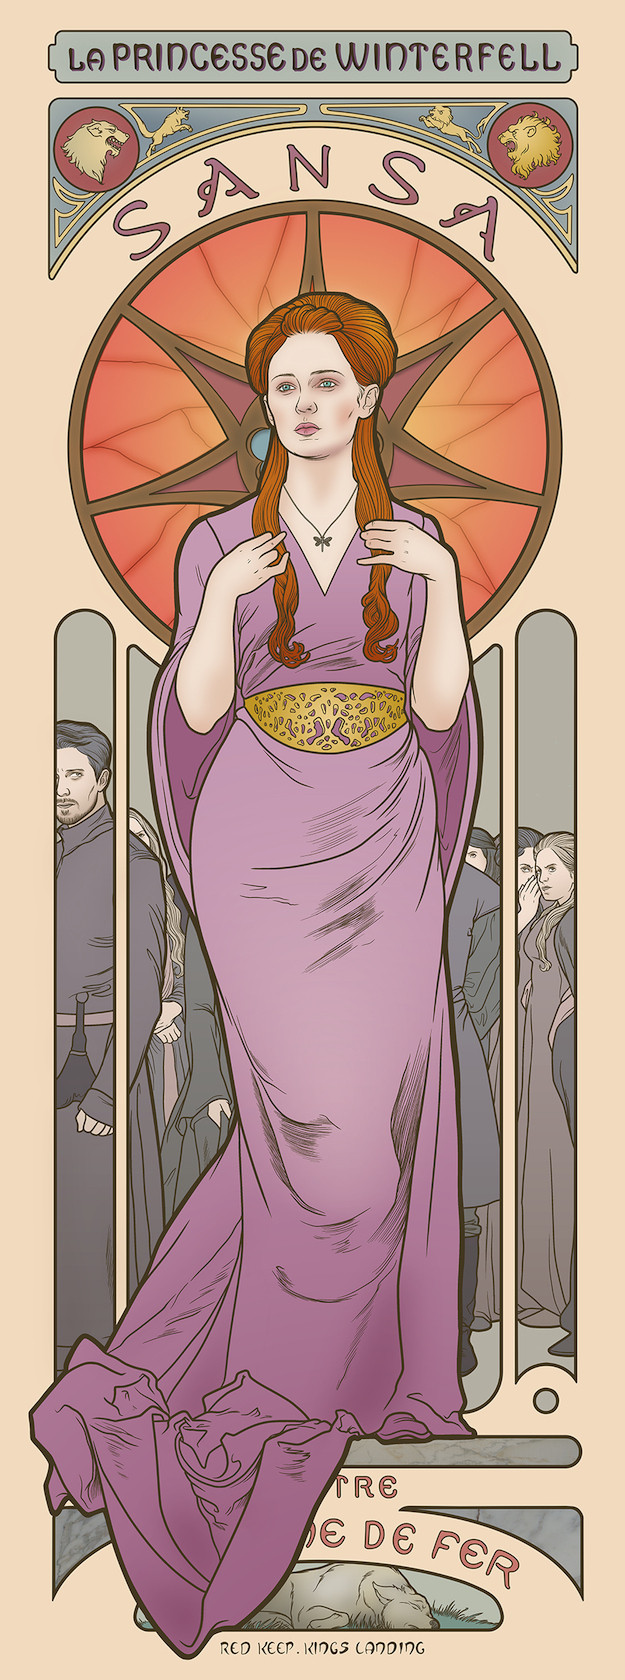 game of thrones women posters